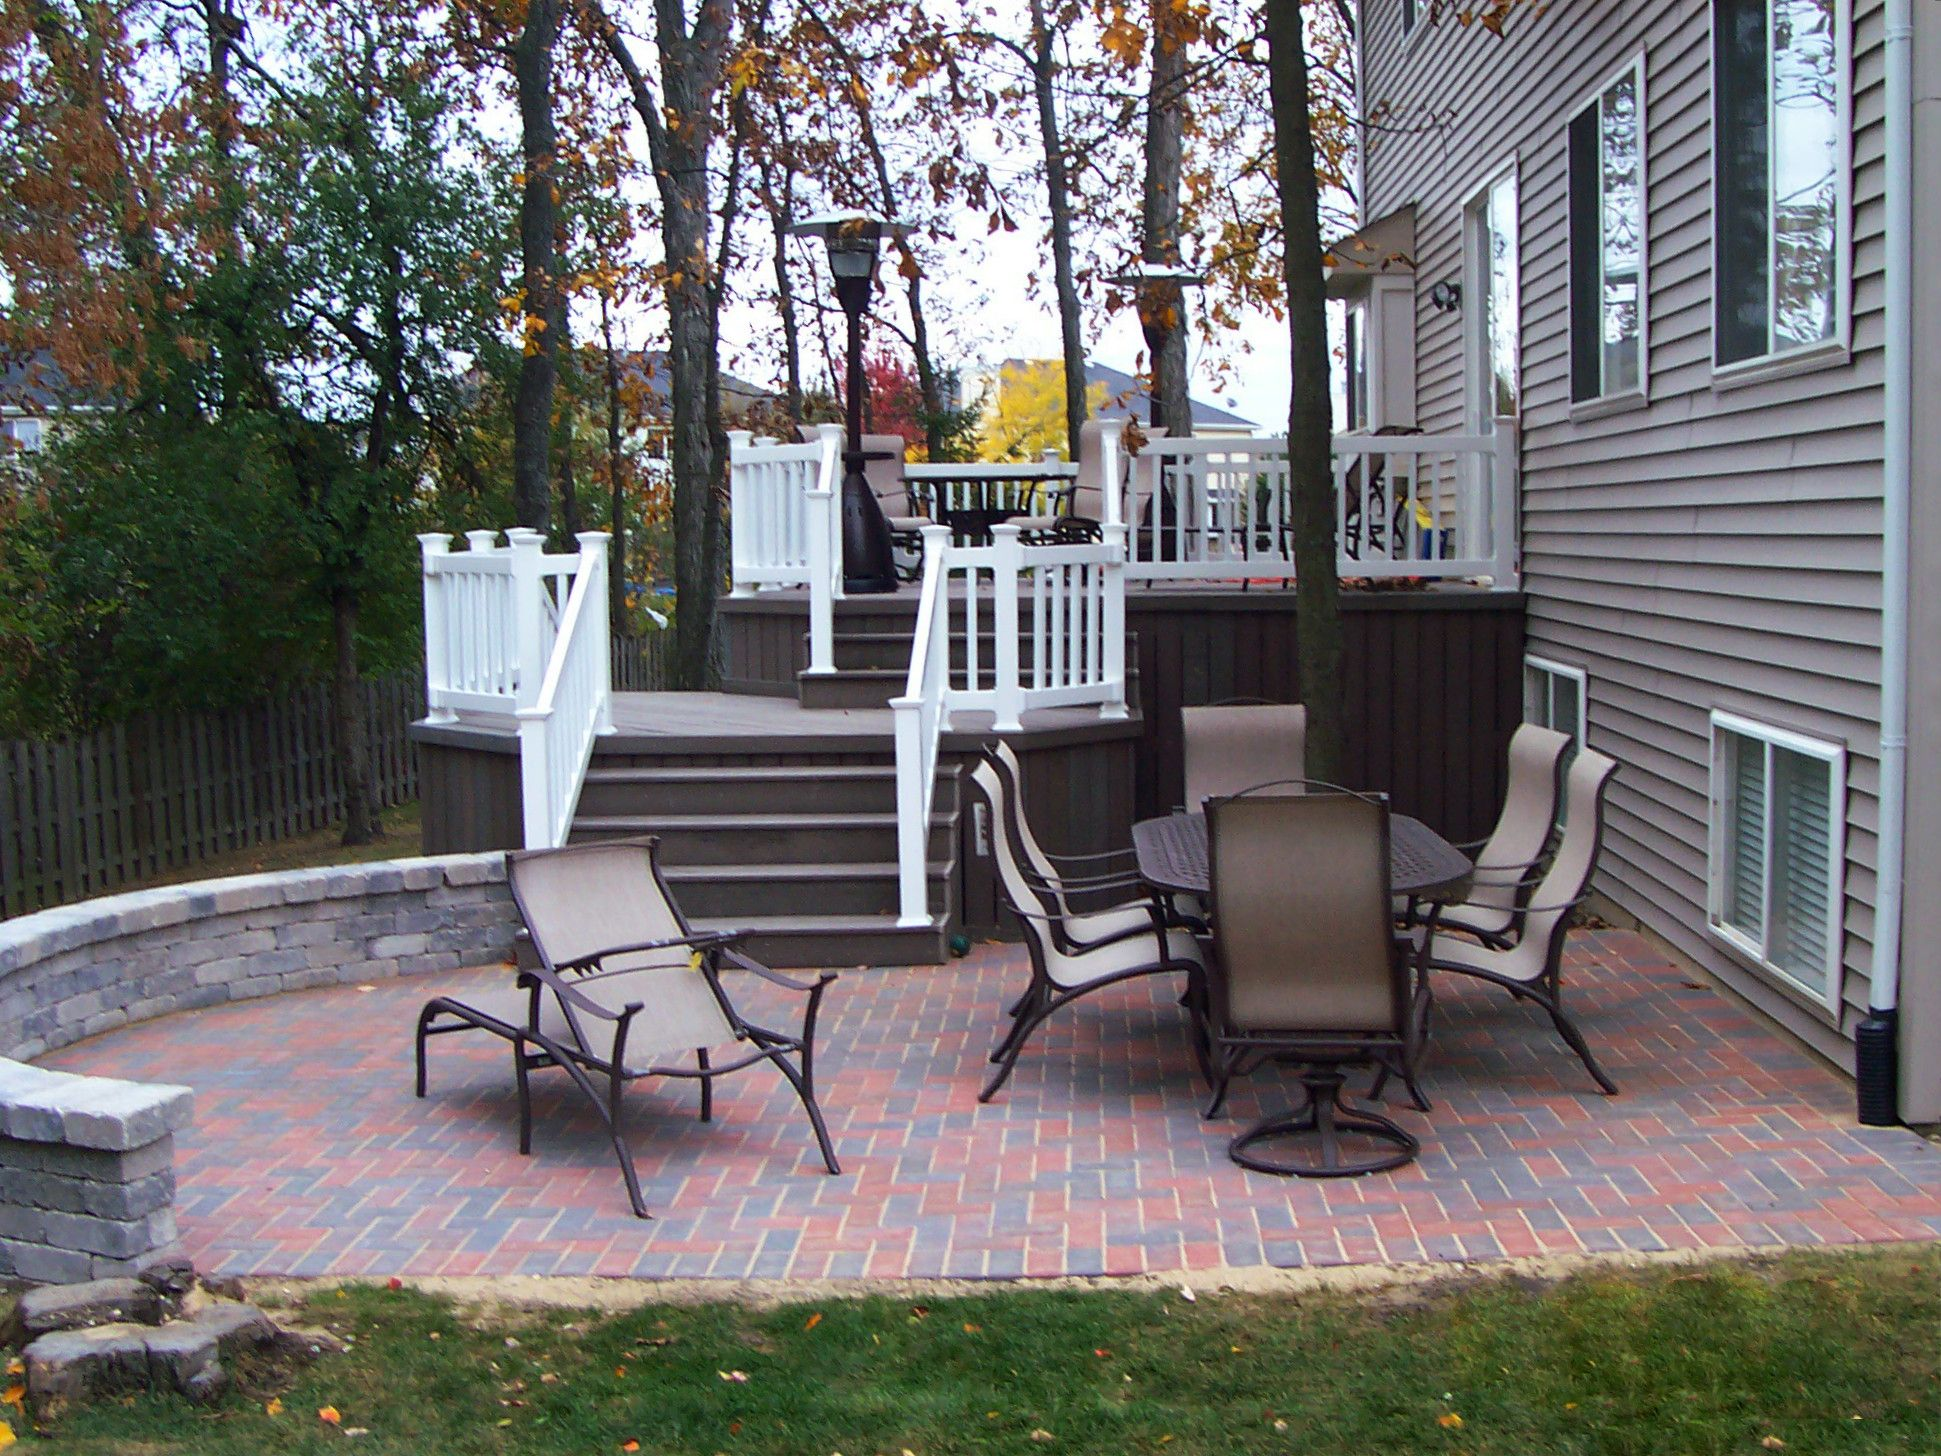 Ocean County NJ Multi level trex deck with brick paver patio and retaining wall